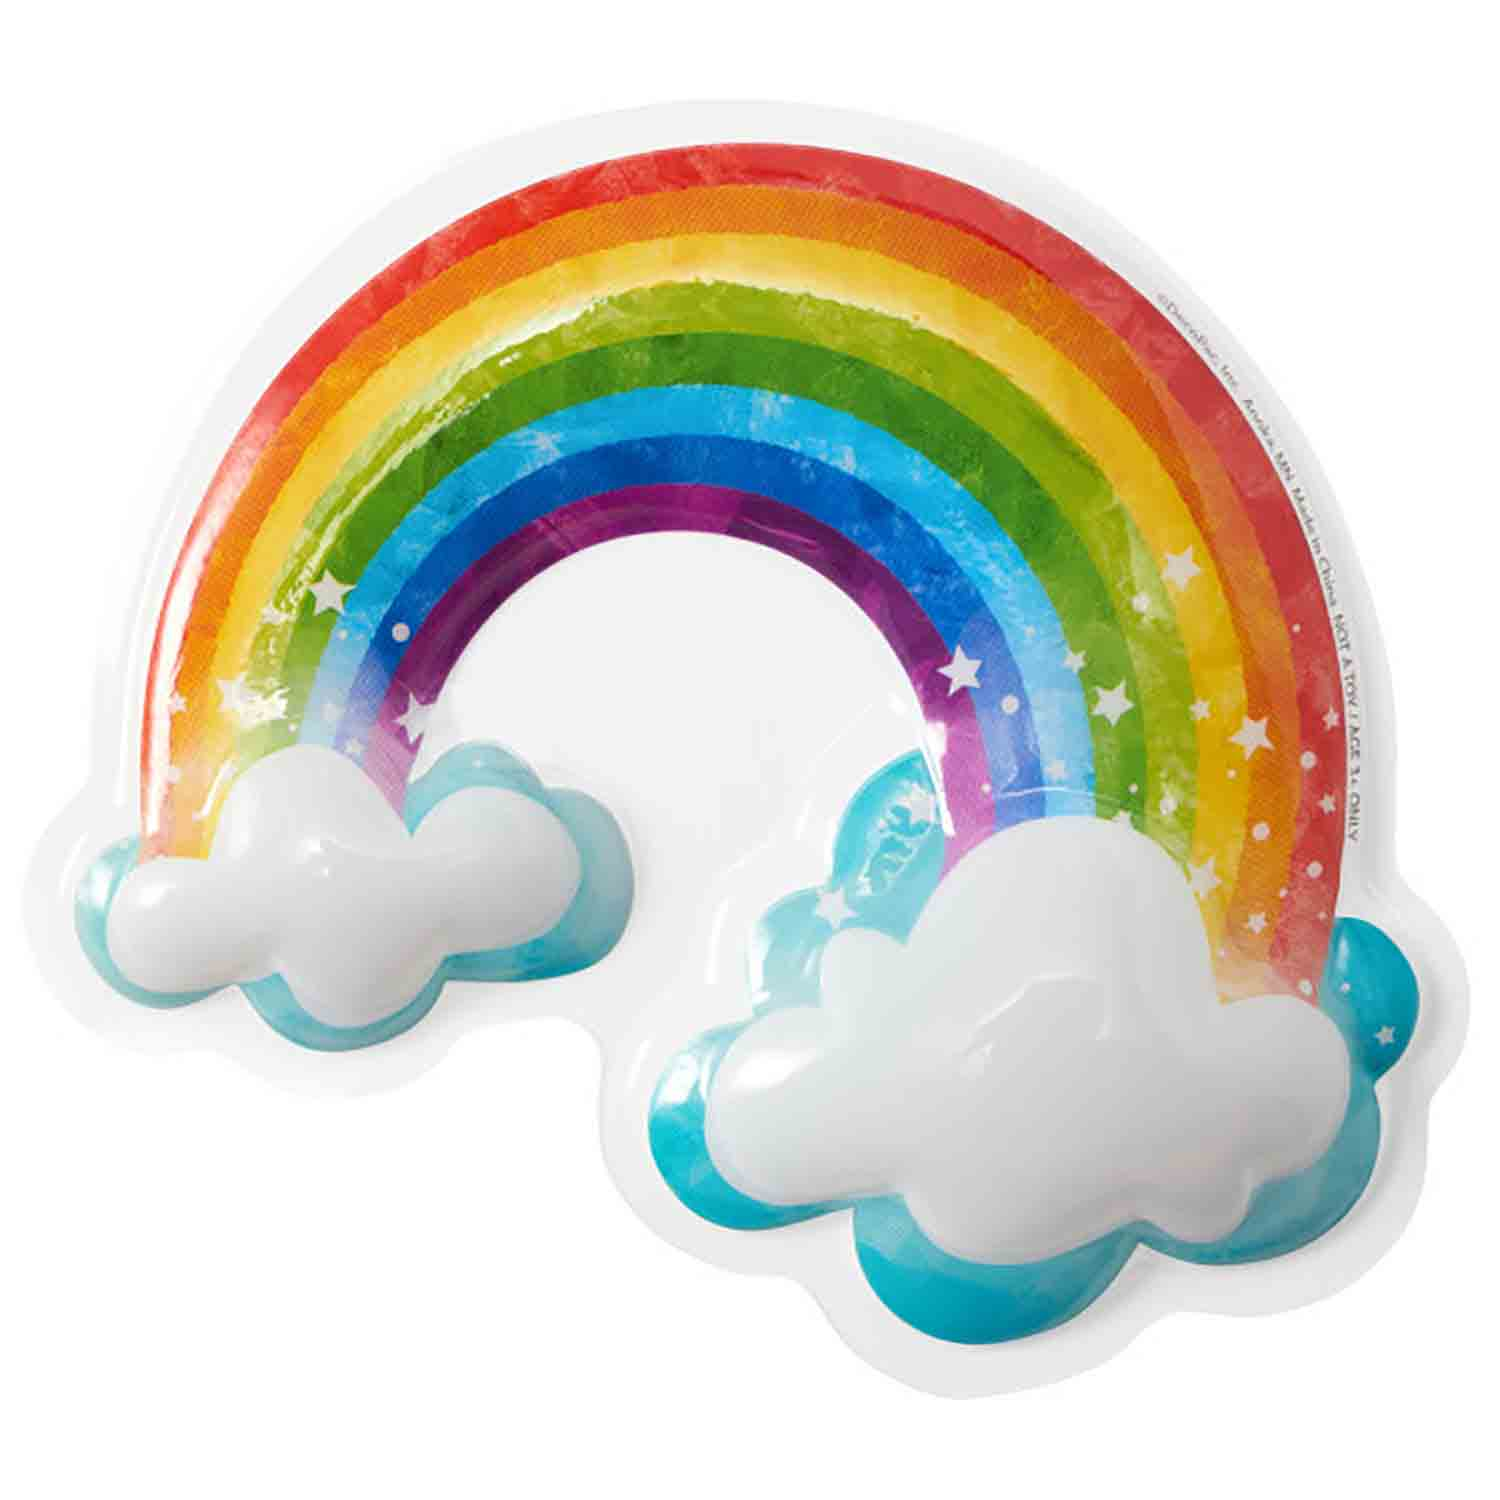 Rainbow with Clouds Cake Toppers